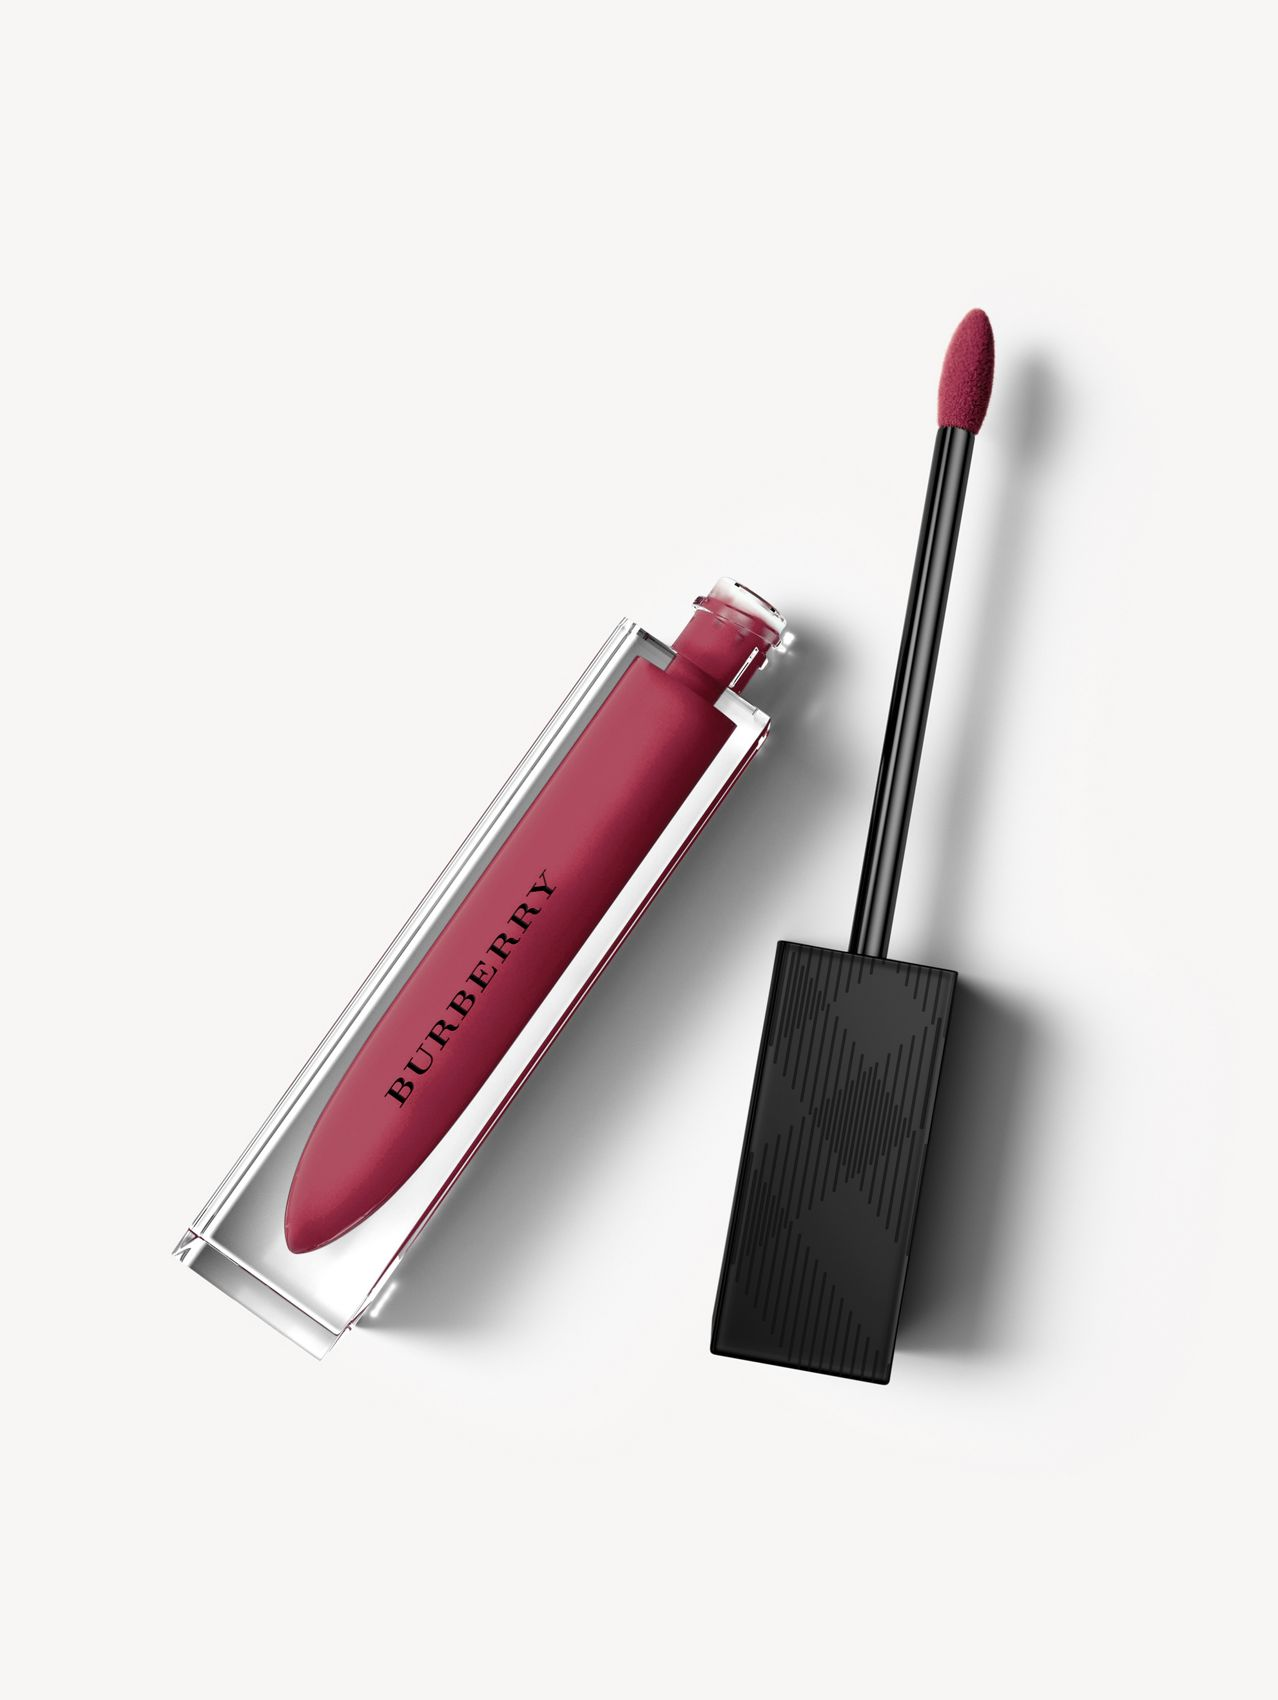 Burberry Kisses Lip Lacquer – Oxblood No.53